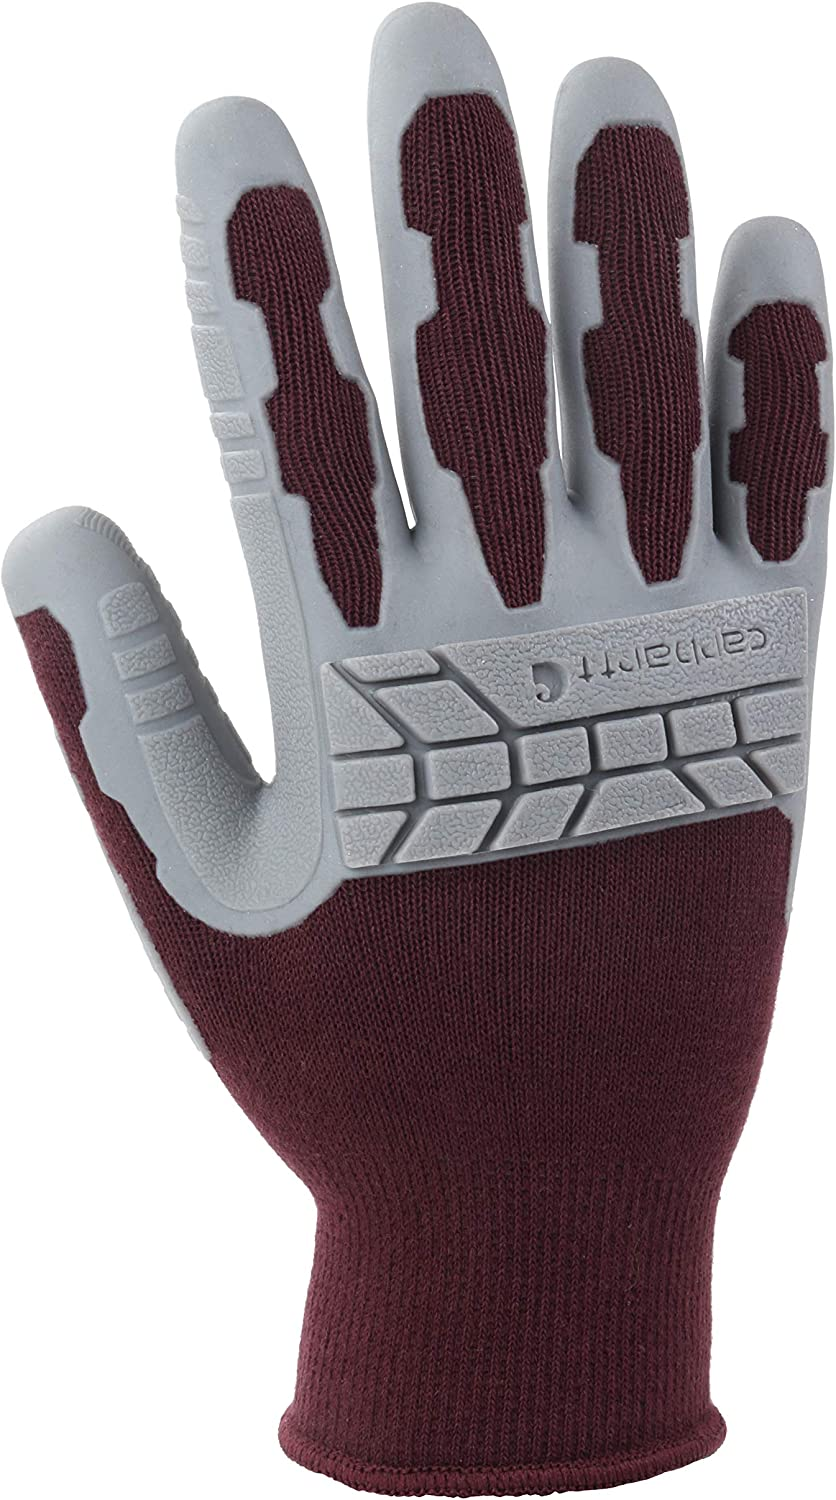 Carhartt womens Knuckler Work Glove With Grip and Knuckle Protection